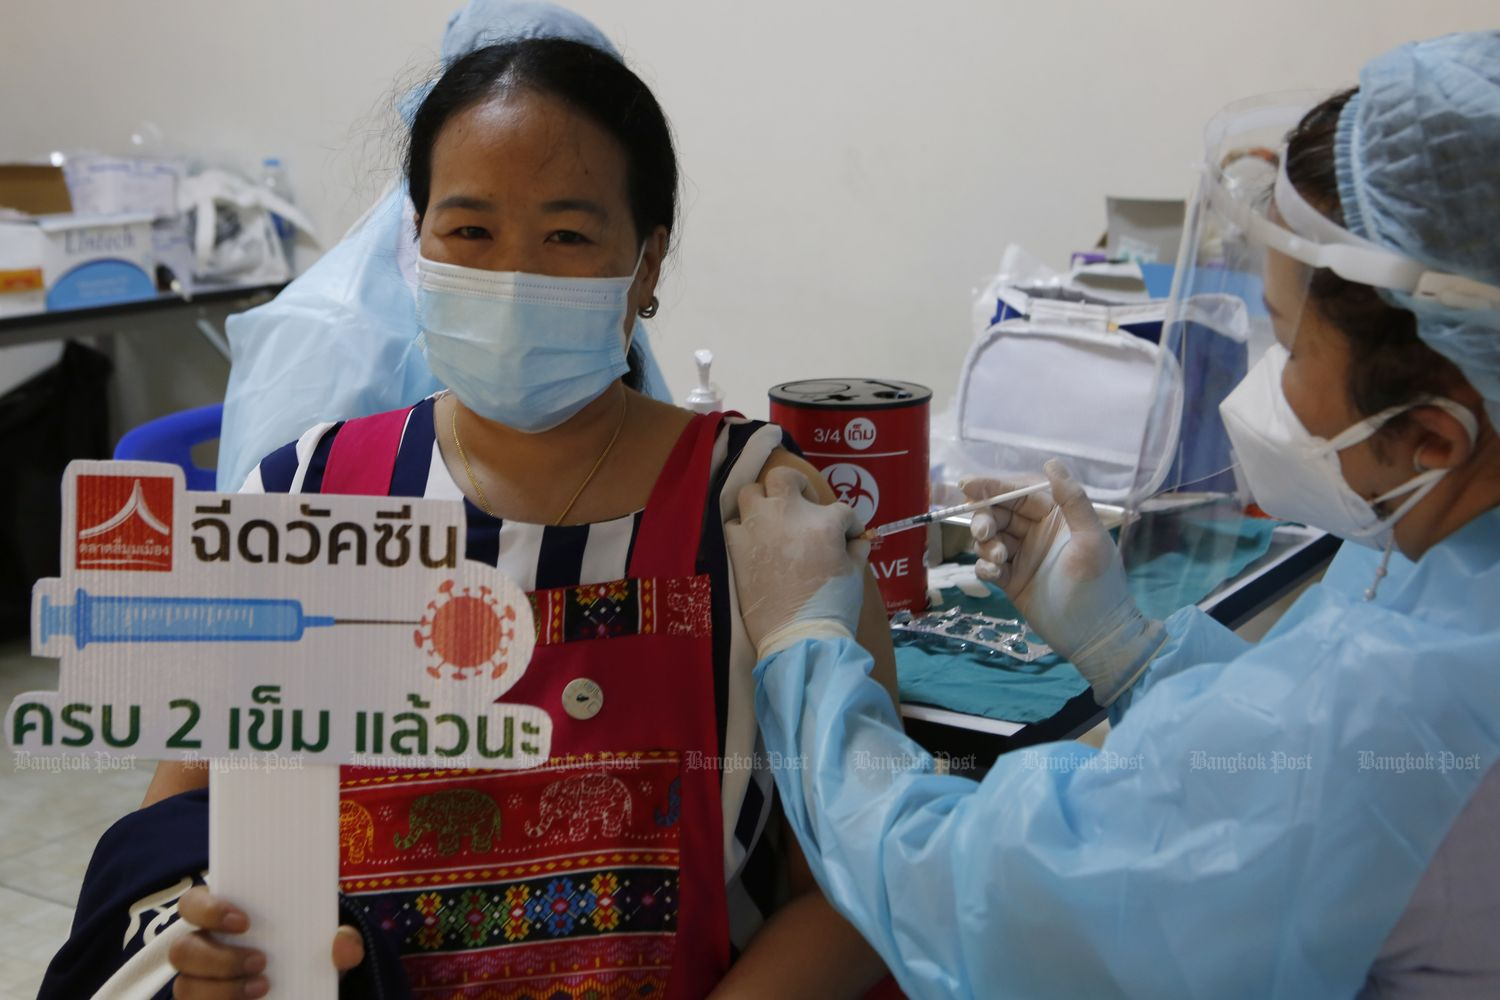 A woman receives her second Covid-19 dose while holding a sign that reads